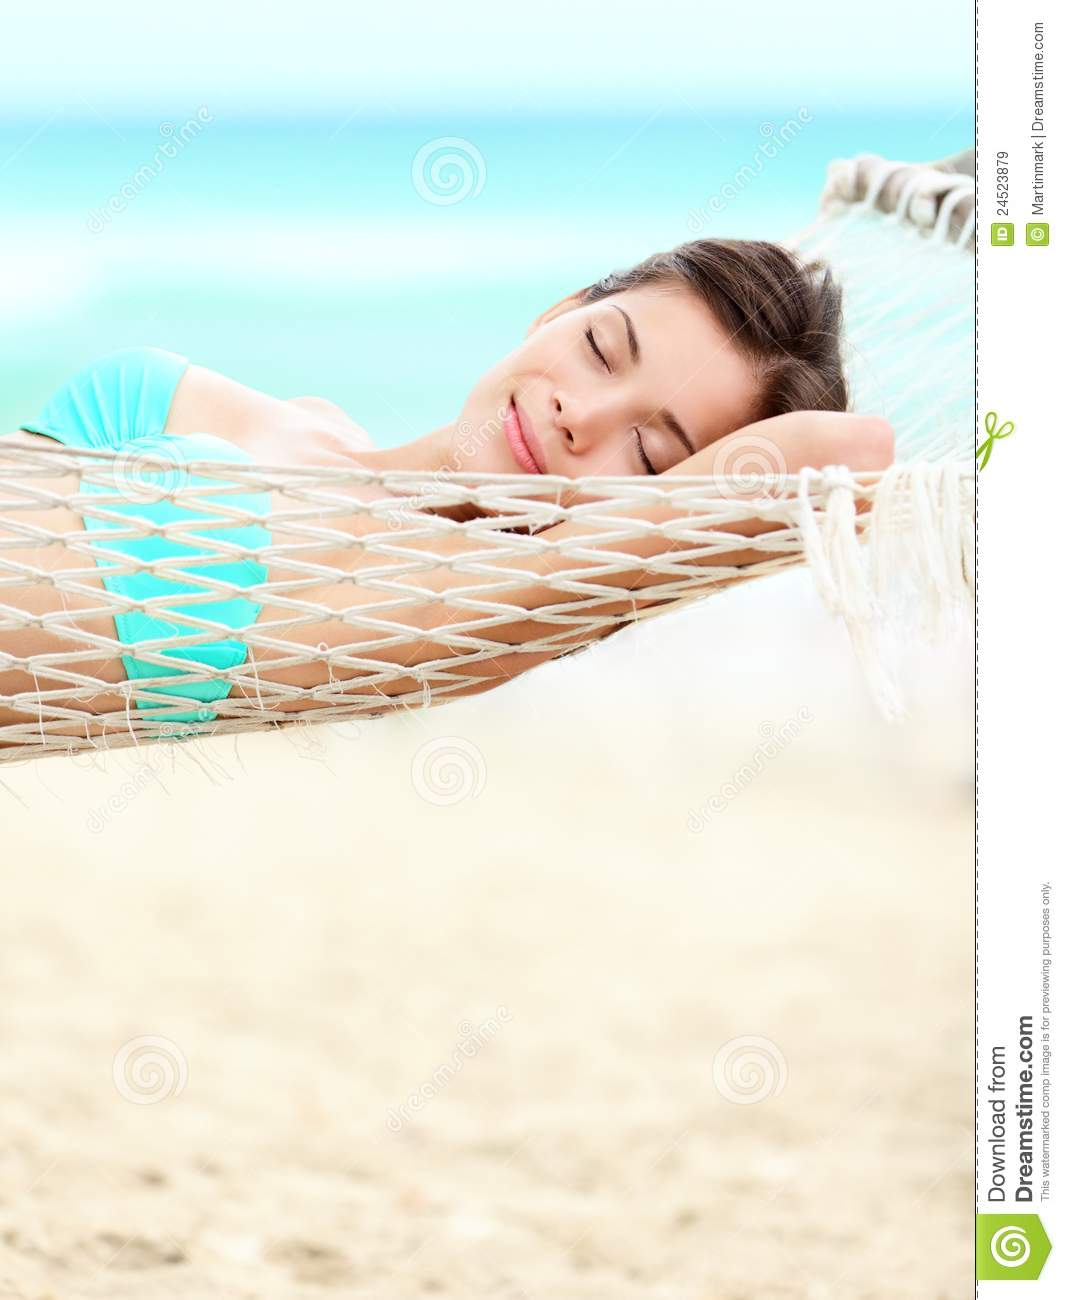 Vacation Woman Relaxing On Beach Royalty Free Stock Images